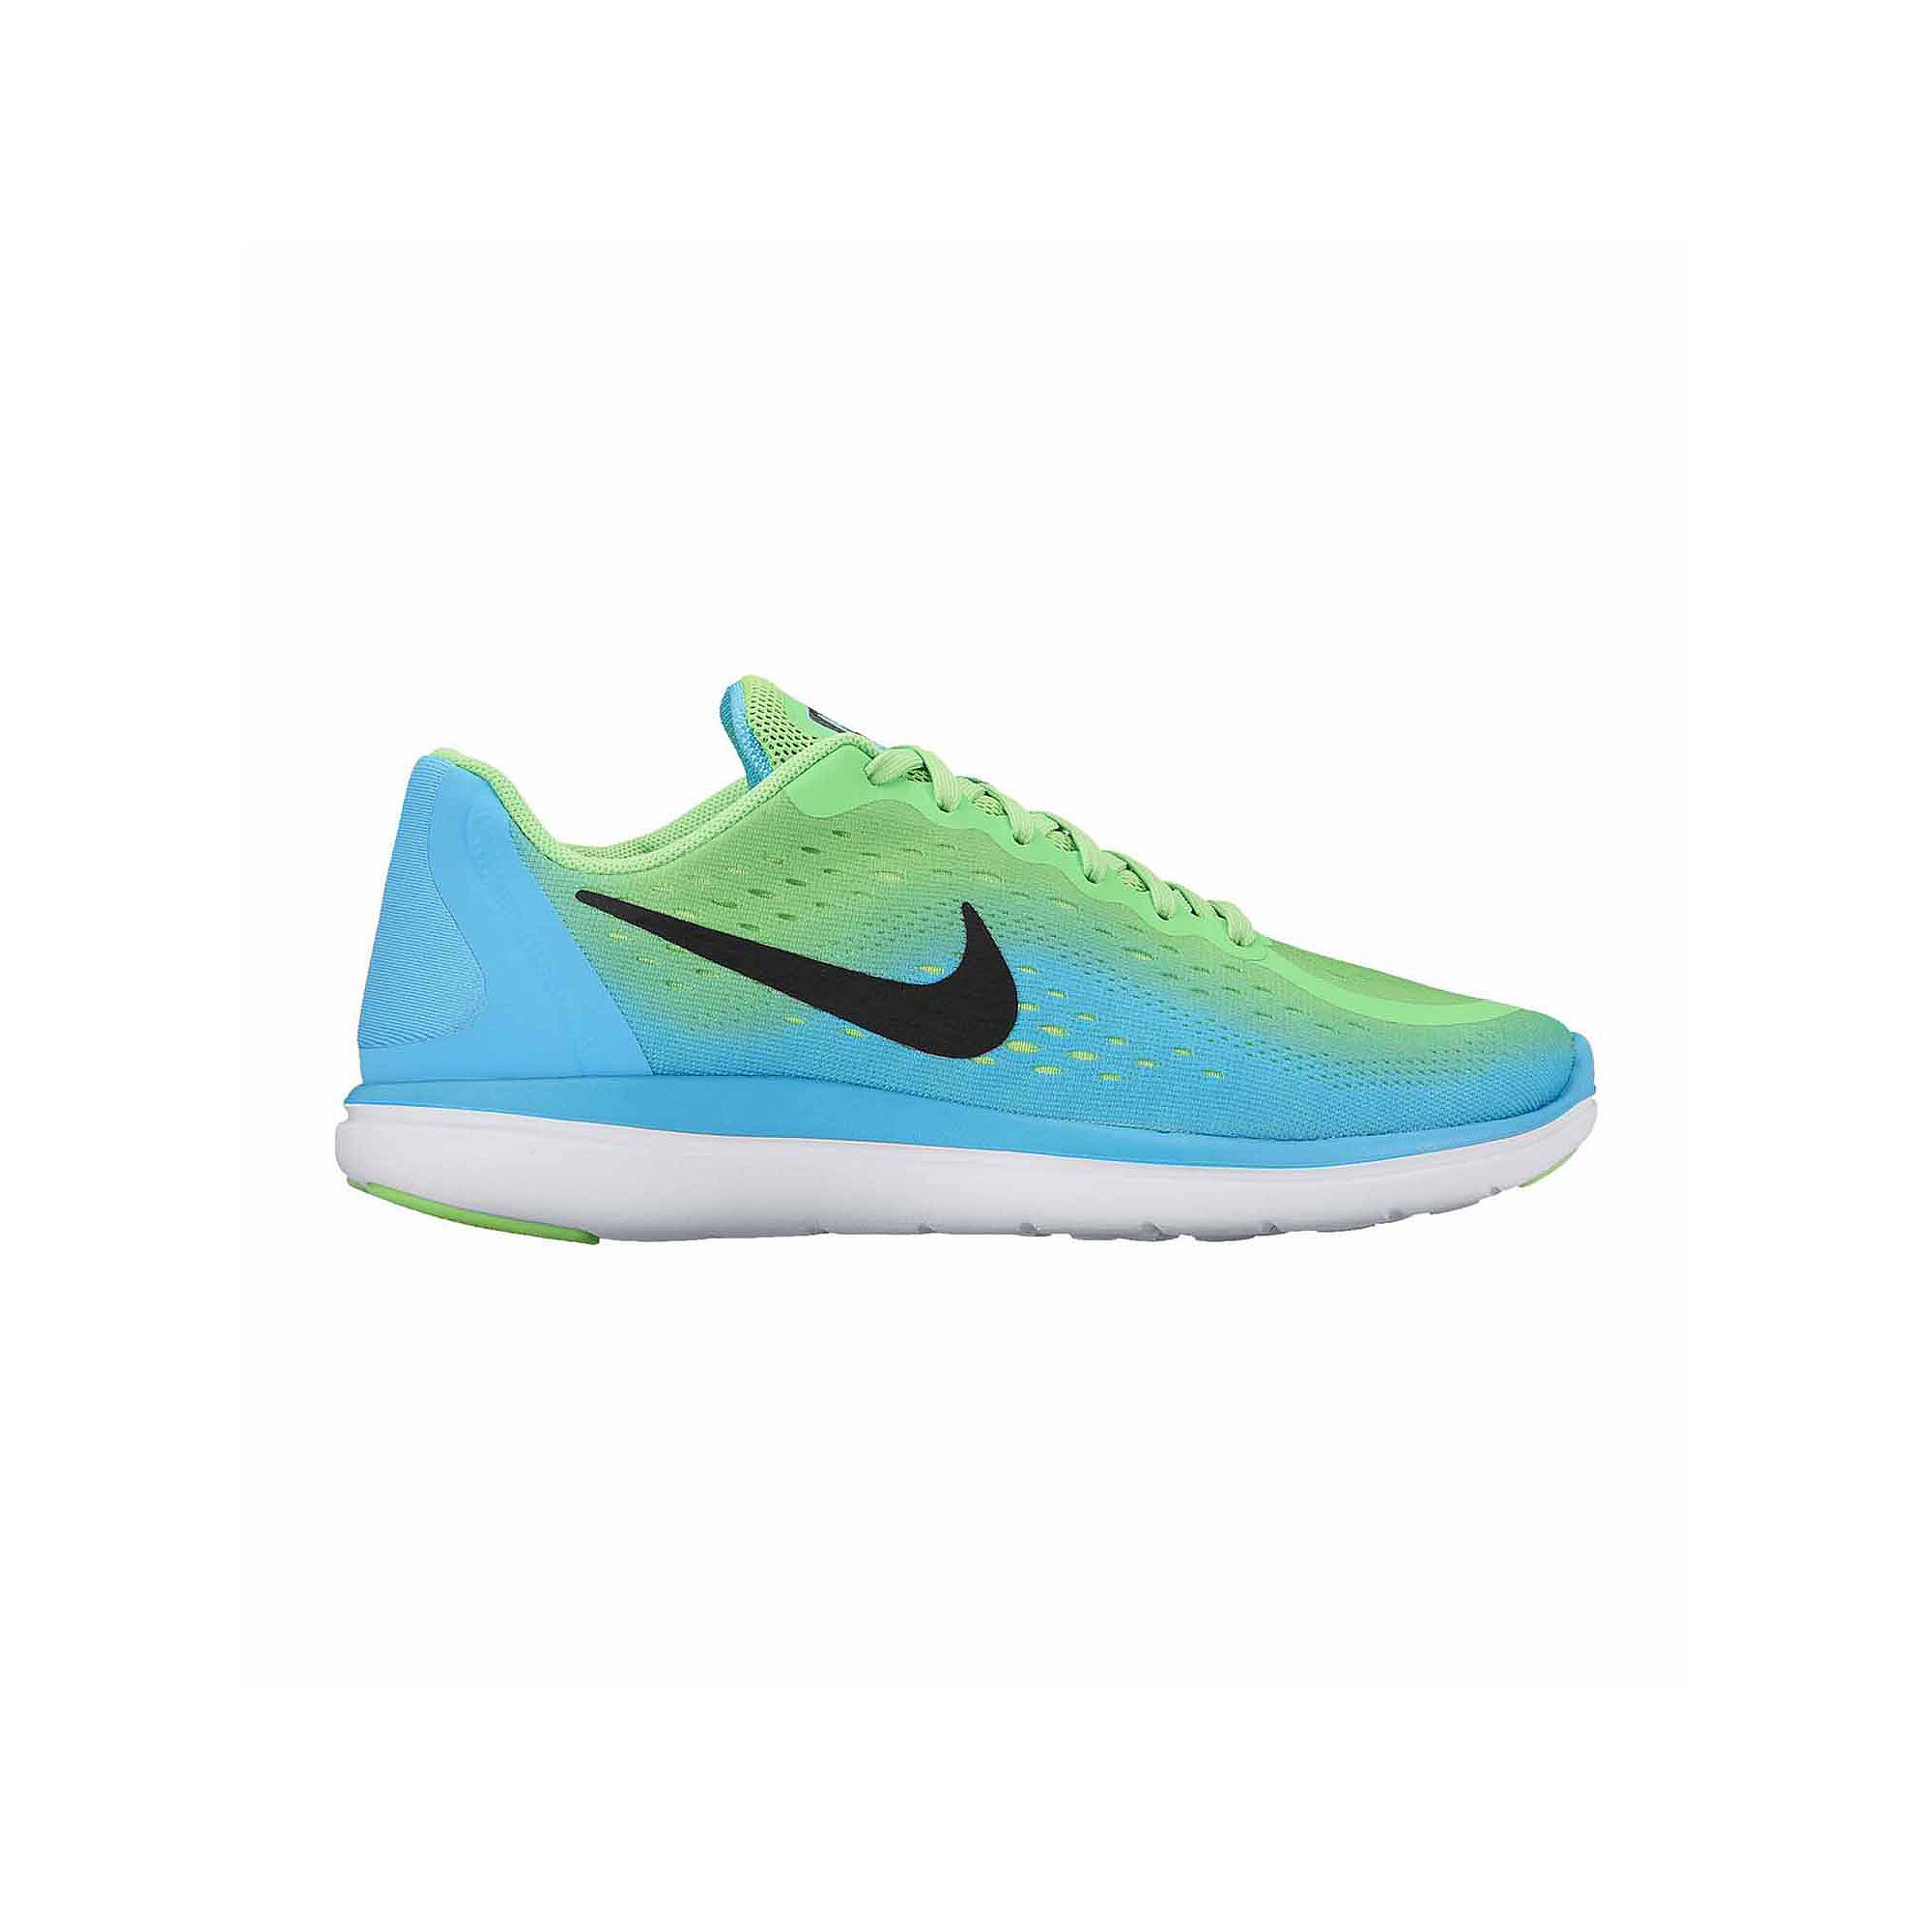 Nike Flex 2017 Run Girls Running Shoes - Big Kids